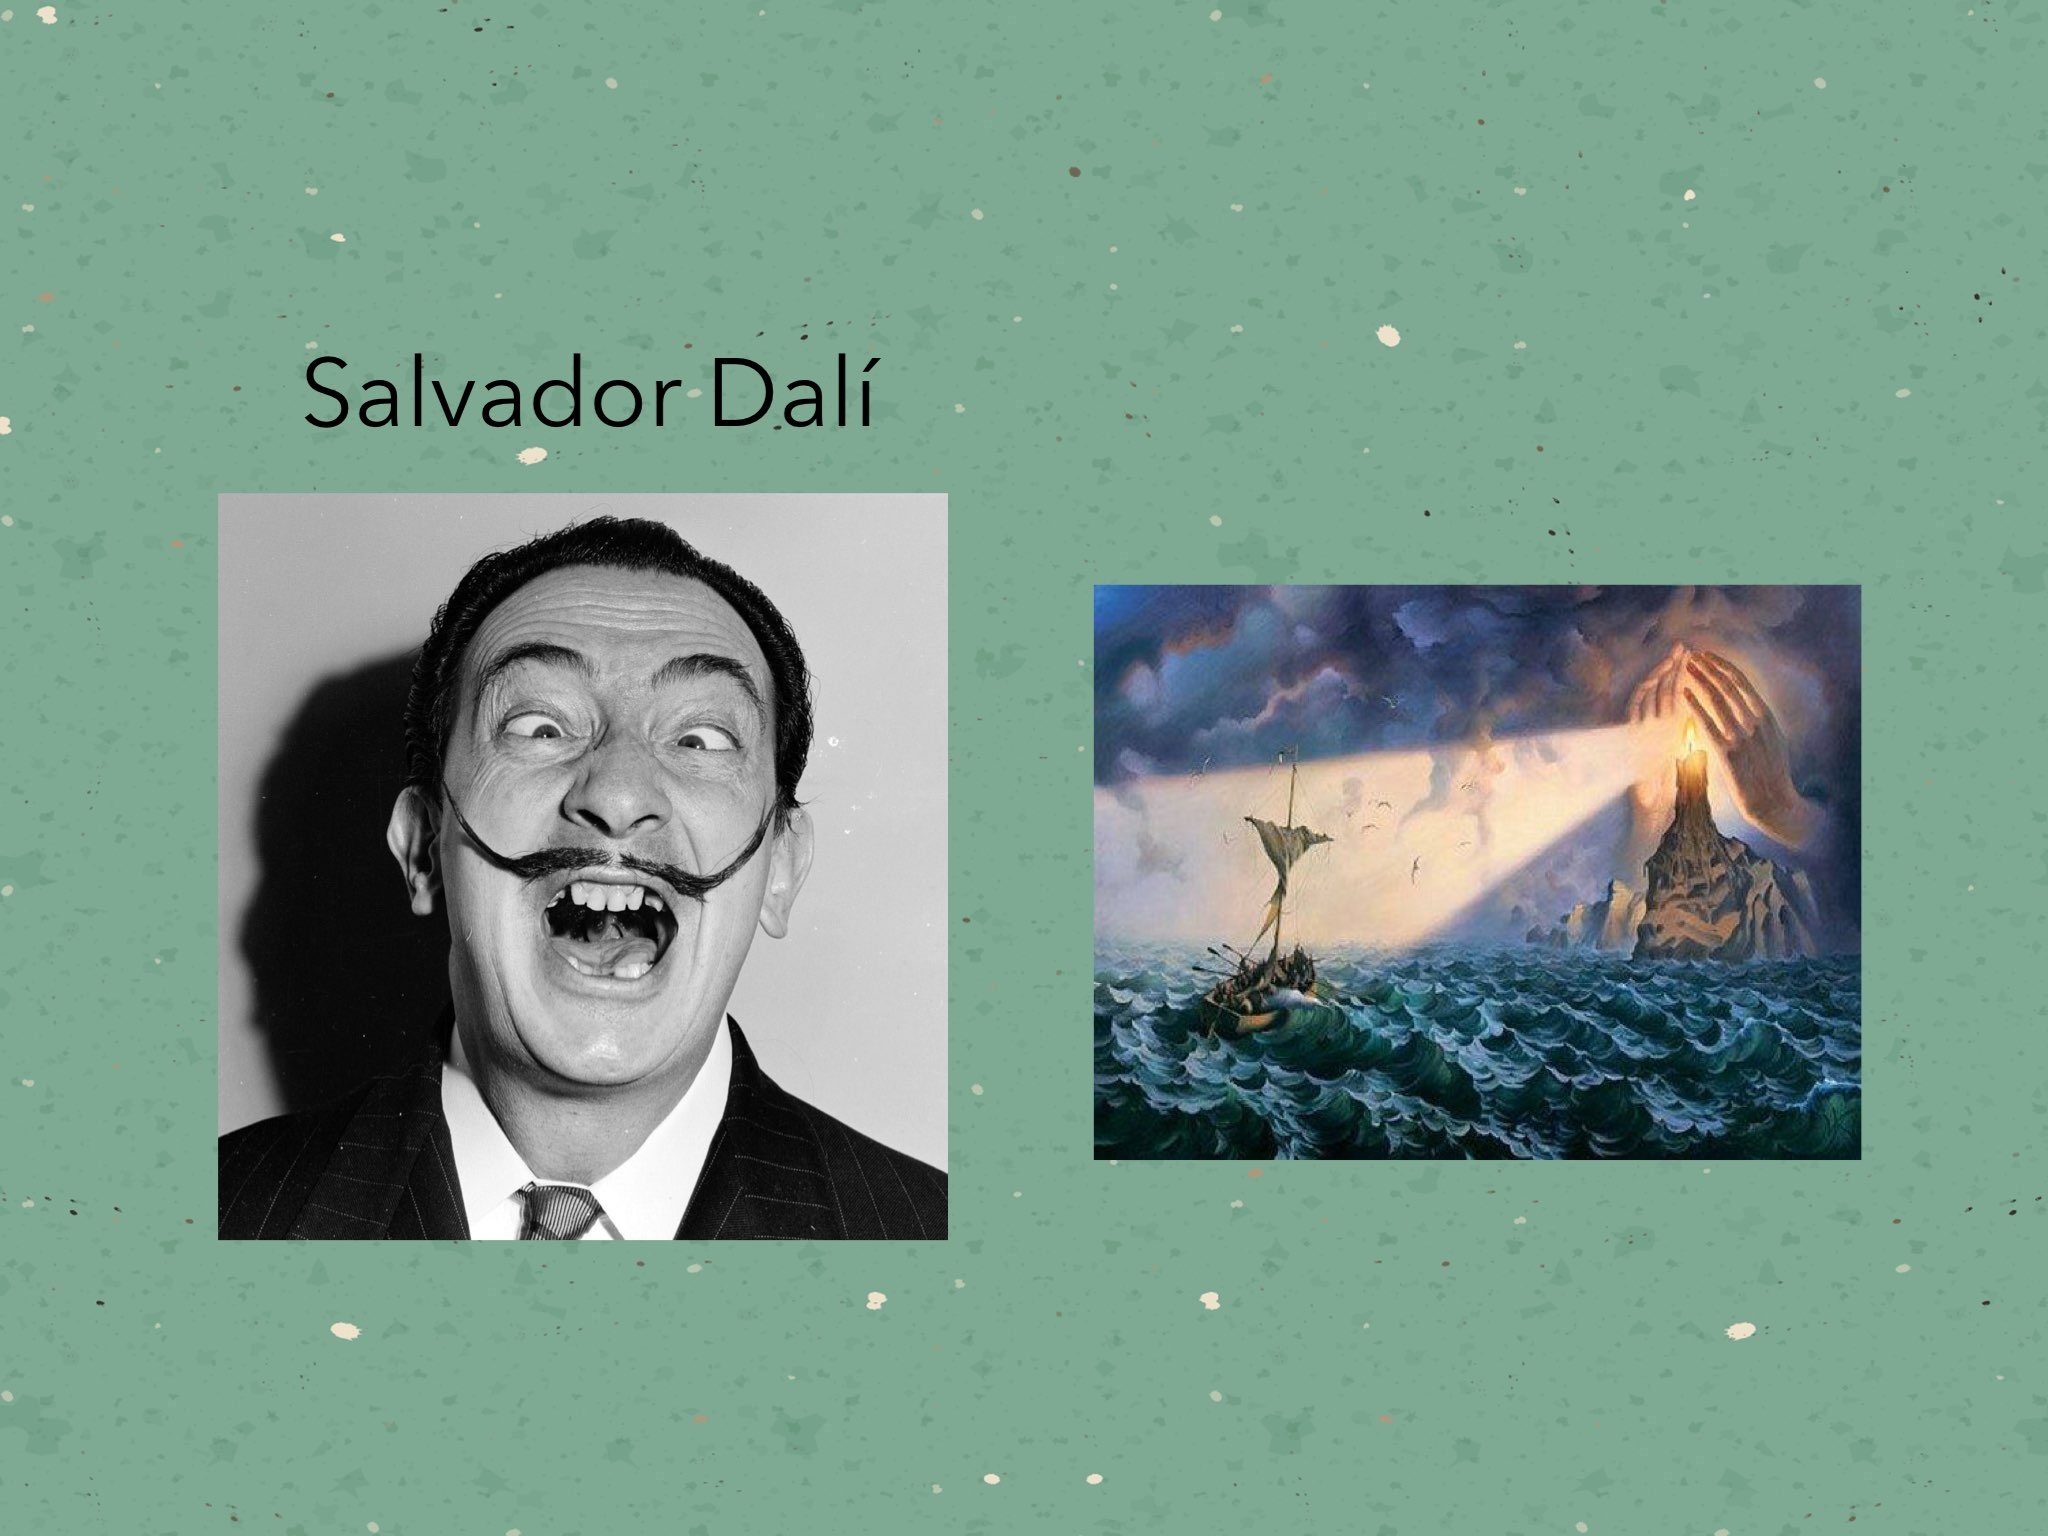 Salvador Dalí by Becca XOX - Educational Games for Kids on